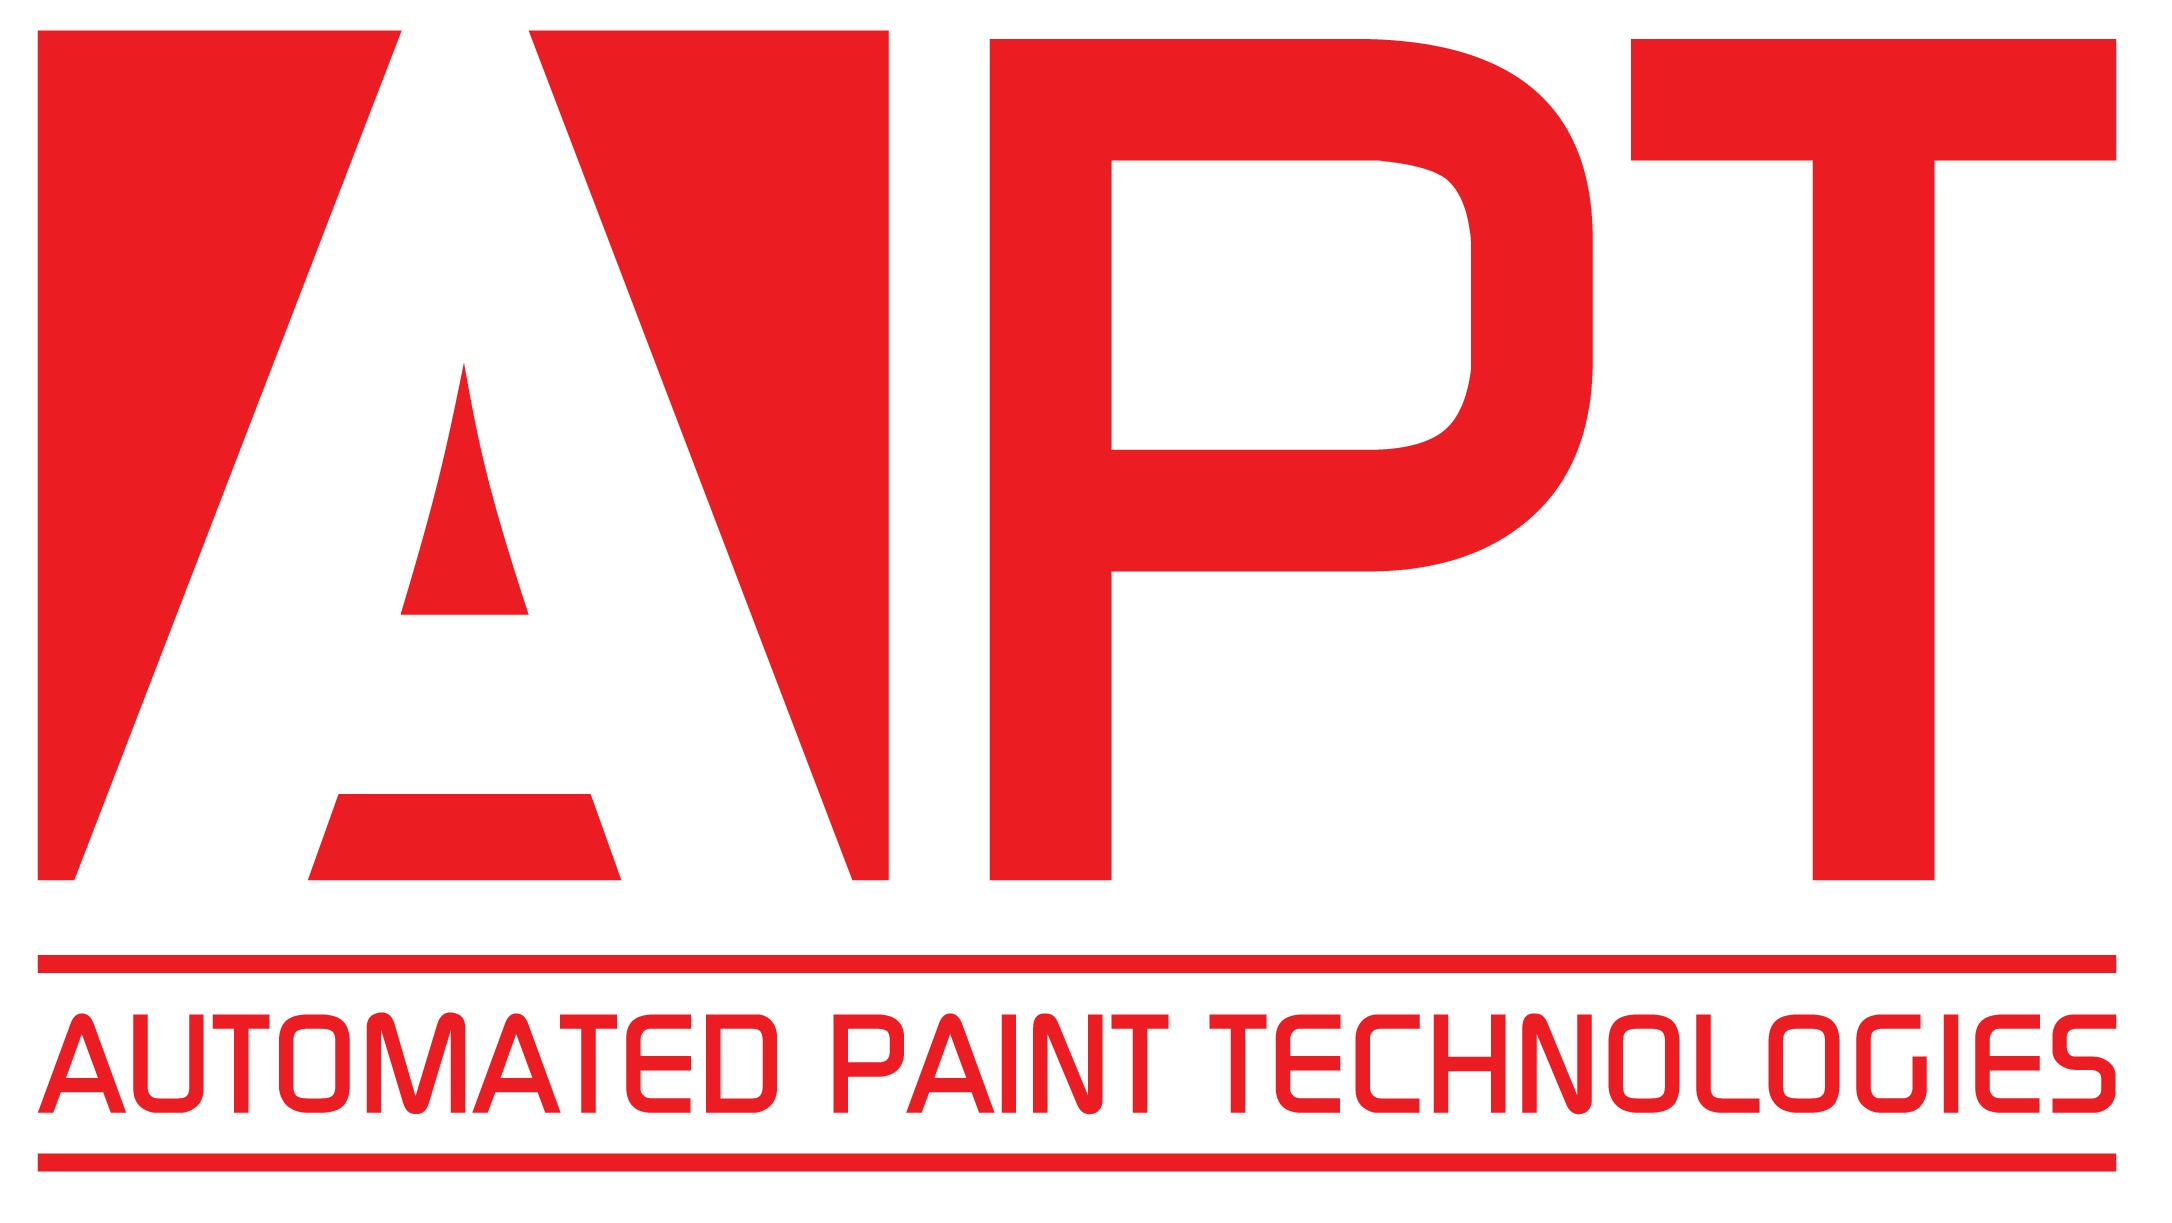 Automated Paint Technologies logo